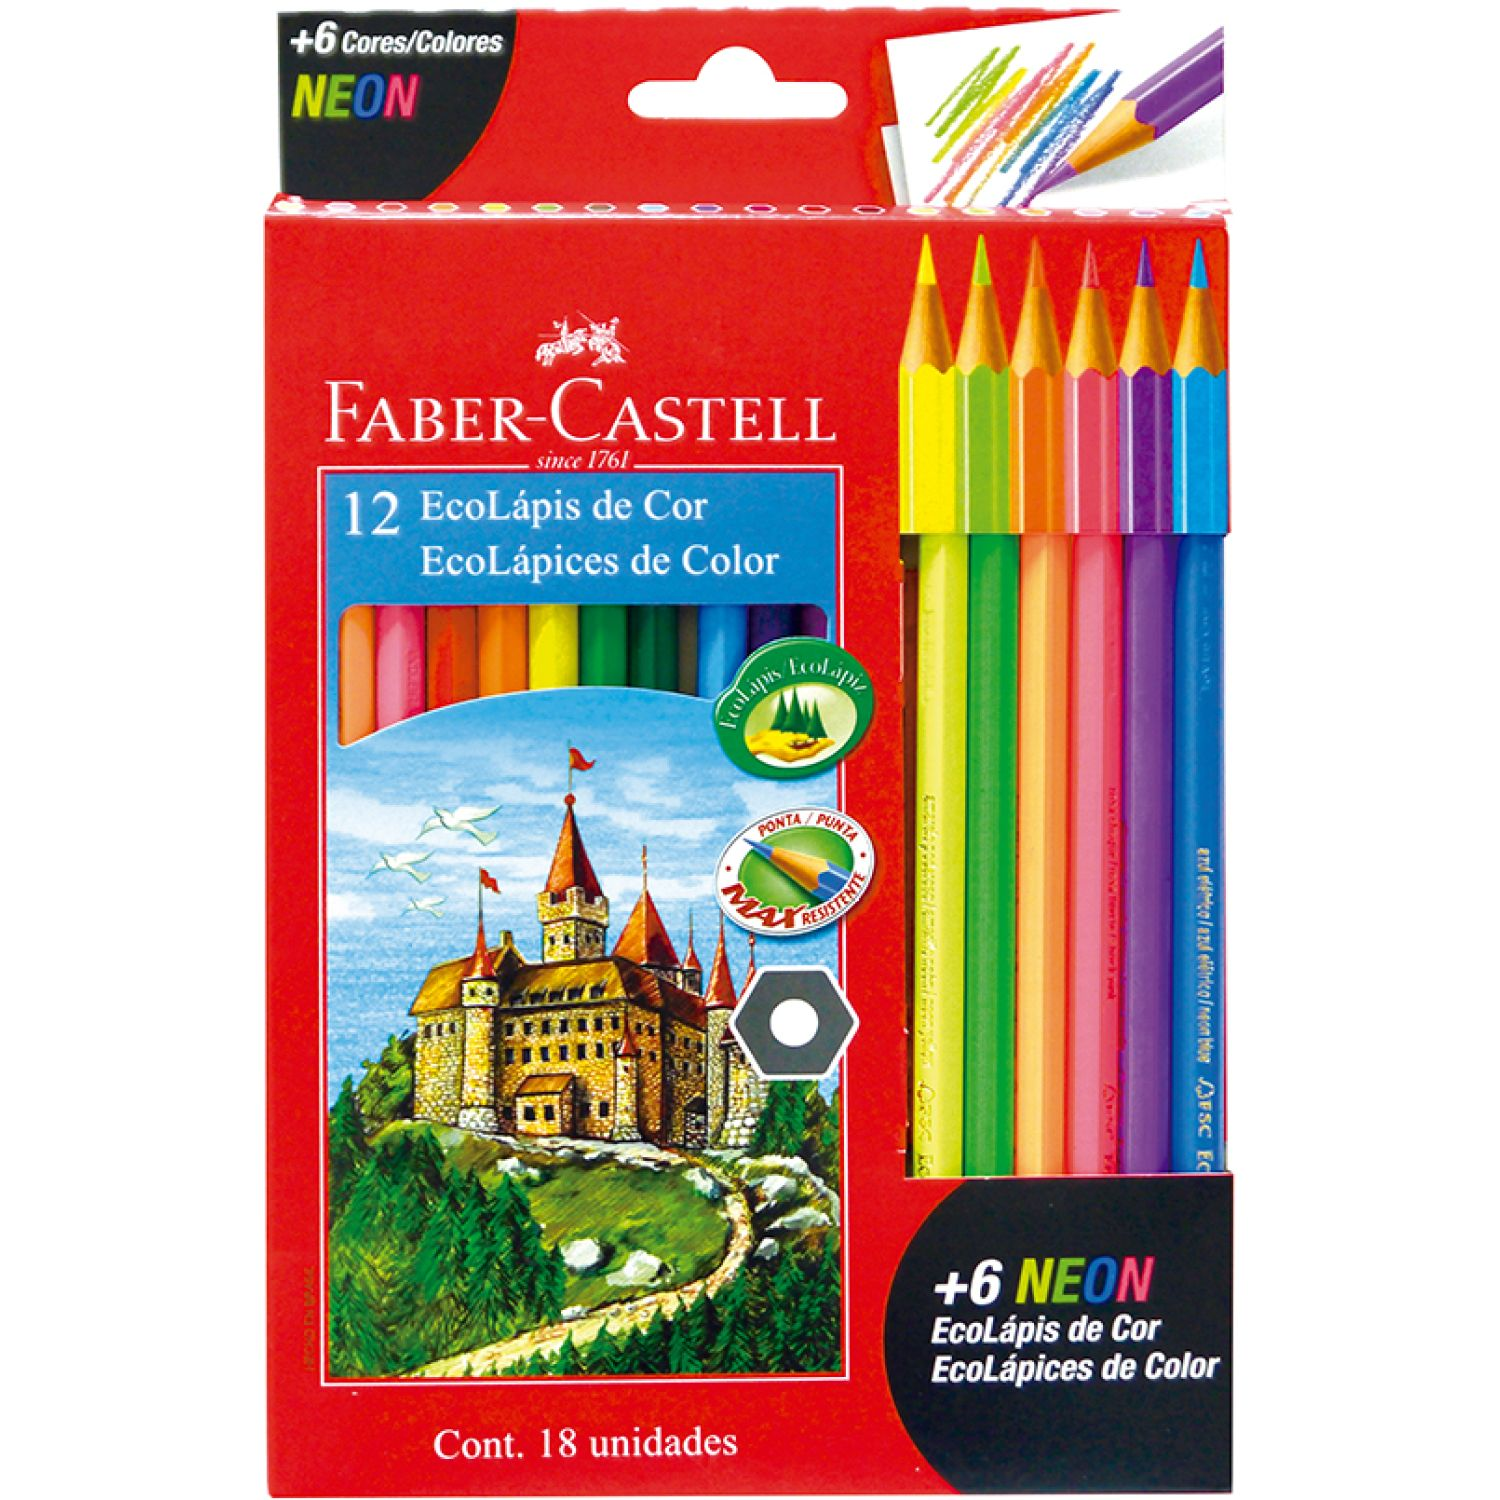 FABER CASTELL Ecolapices Colores X 12 + 6 Neon Varios Lápices coloreados